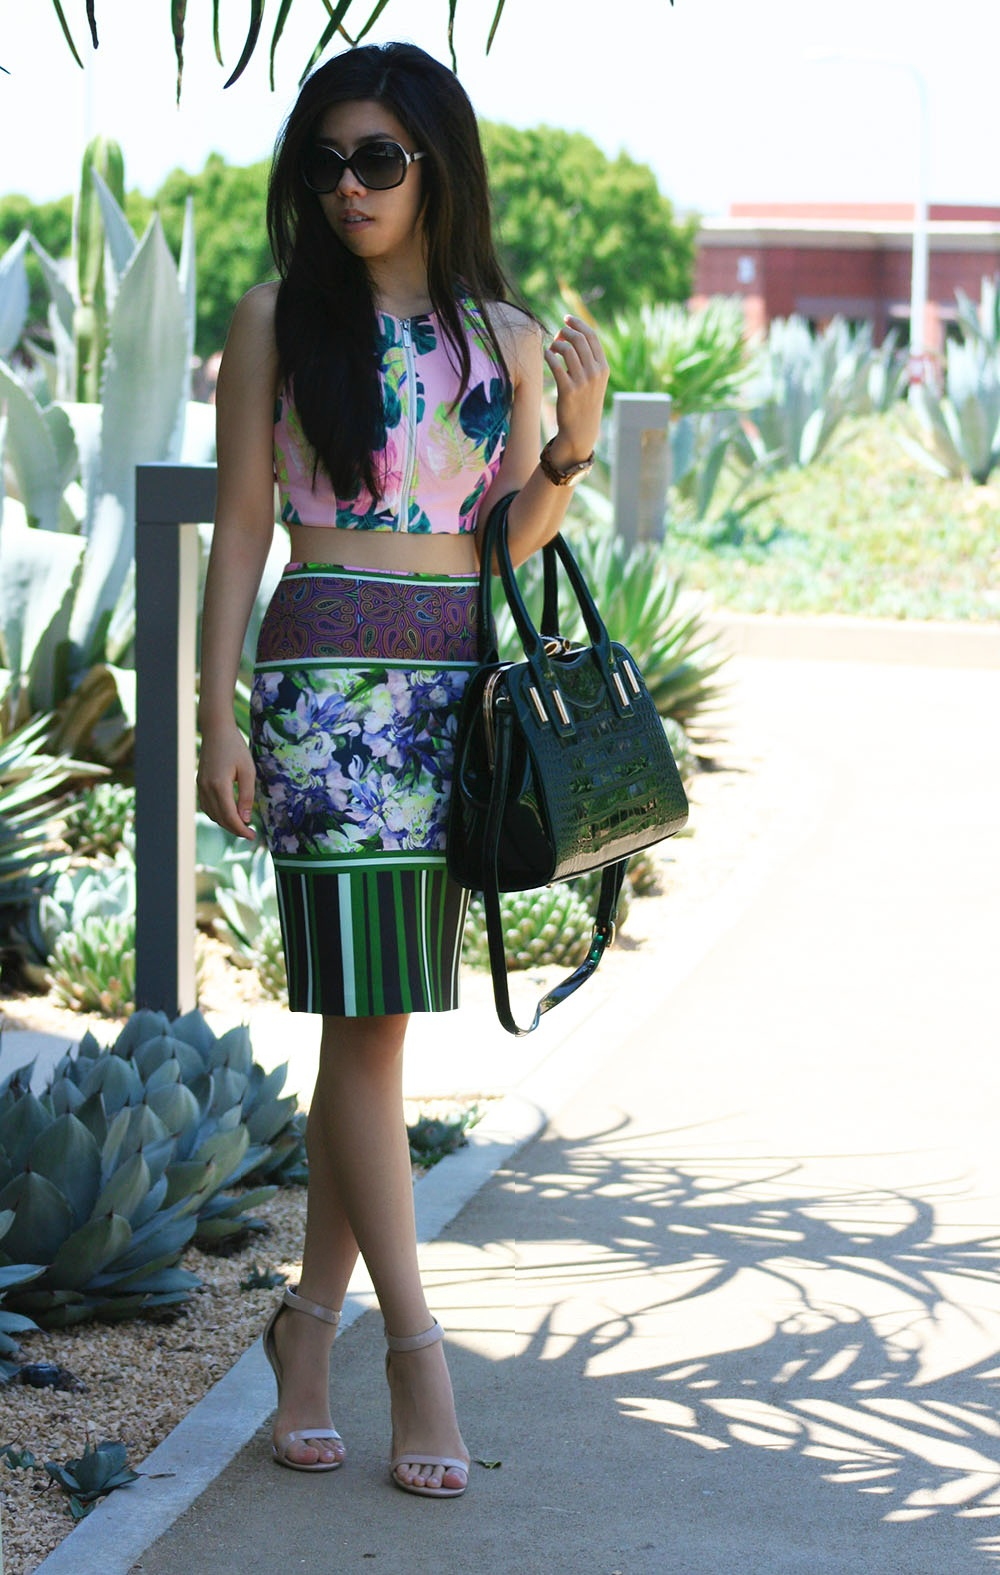 Adrienne Nguyen_Lookbook_Summer Vibes_Beach Babe_How to wear a crop top with a pencil skirt